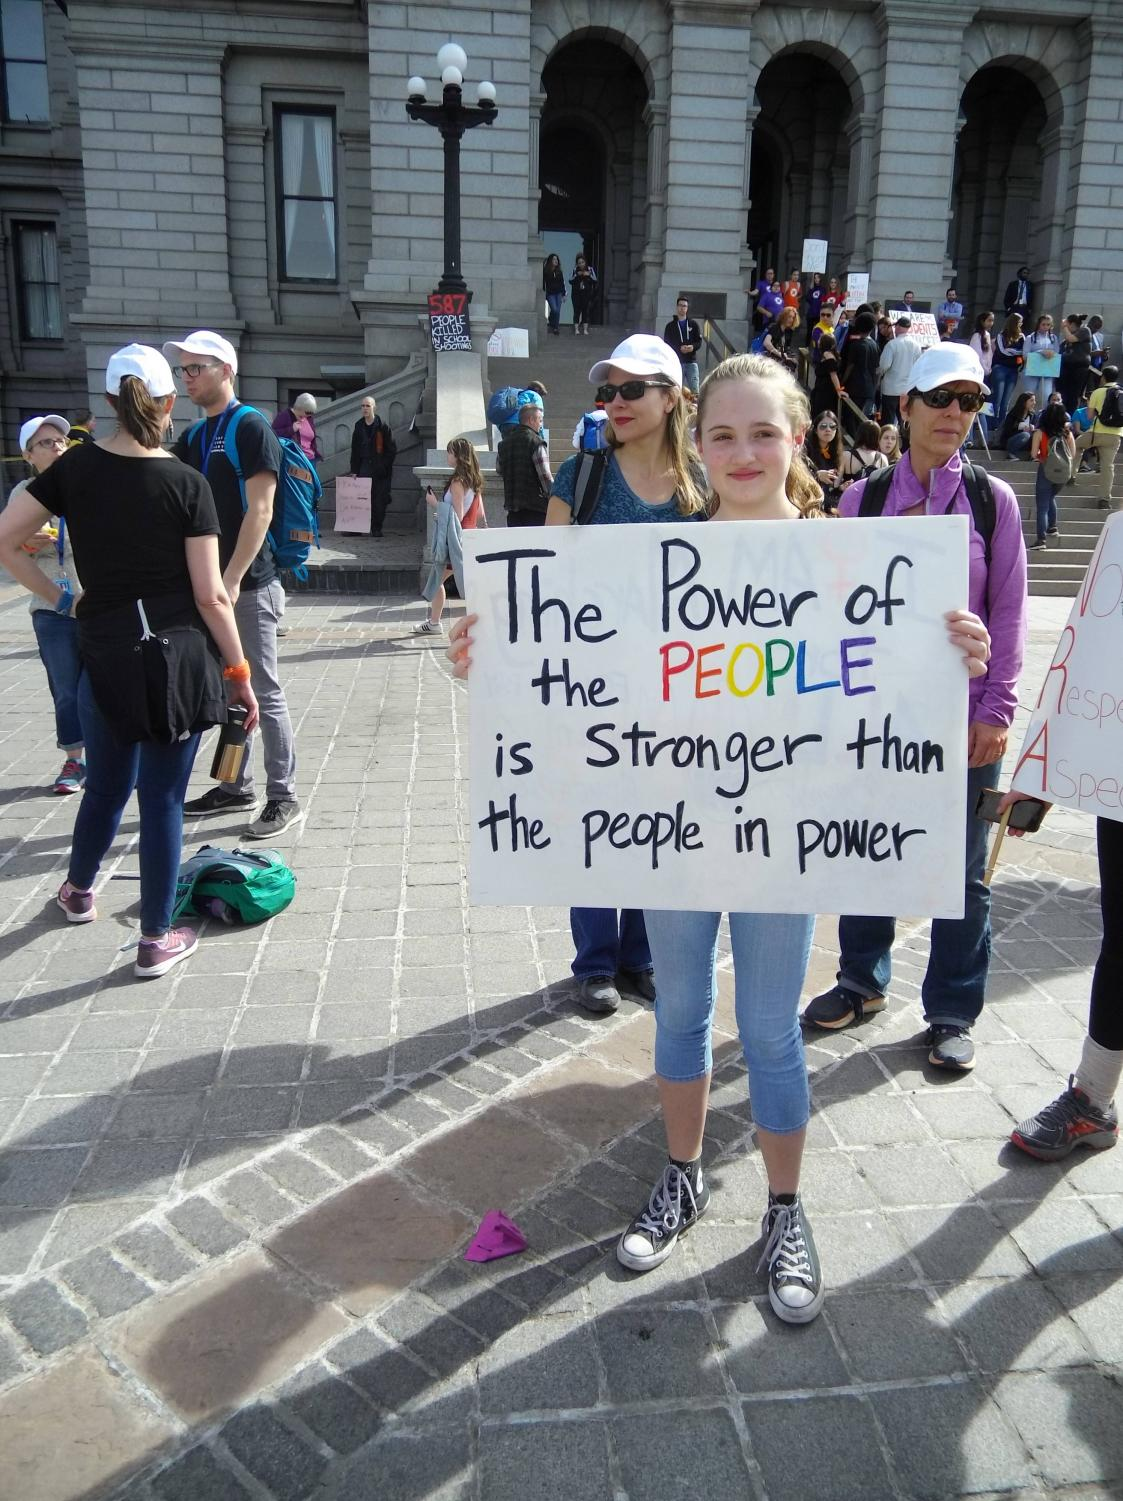 Denver, March 14. Student protester tells us where the power truly comes from.